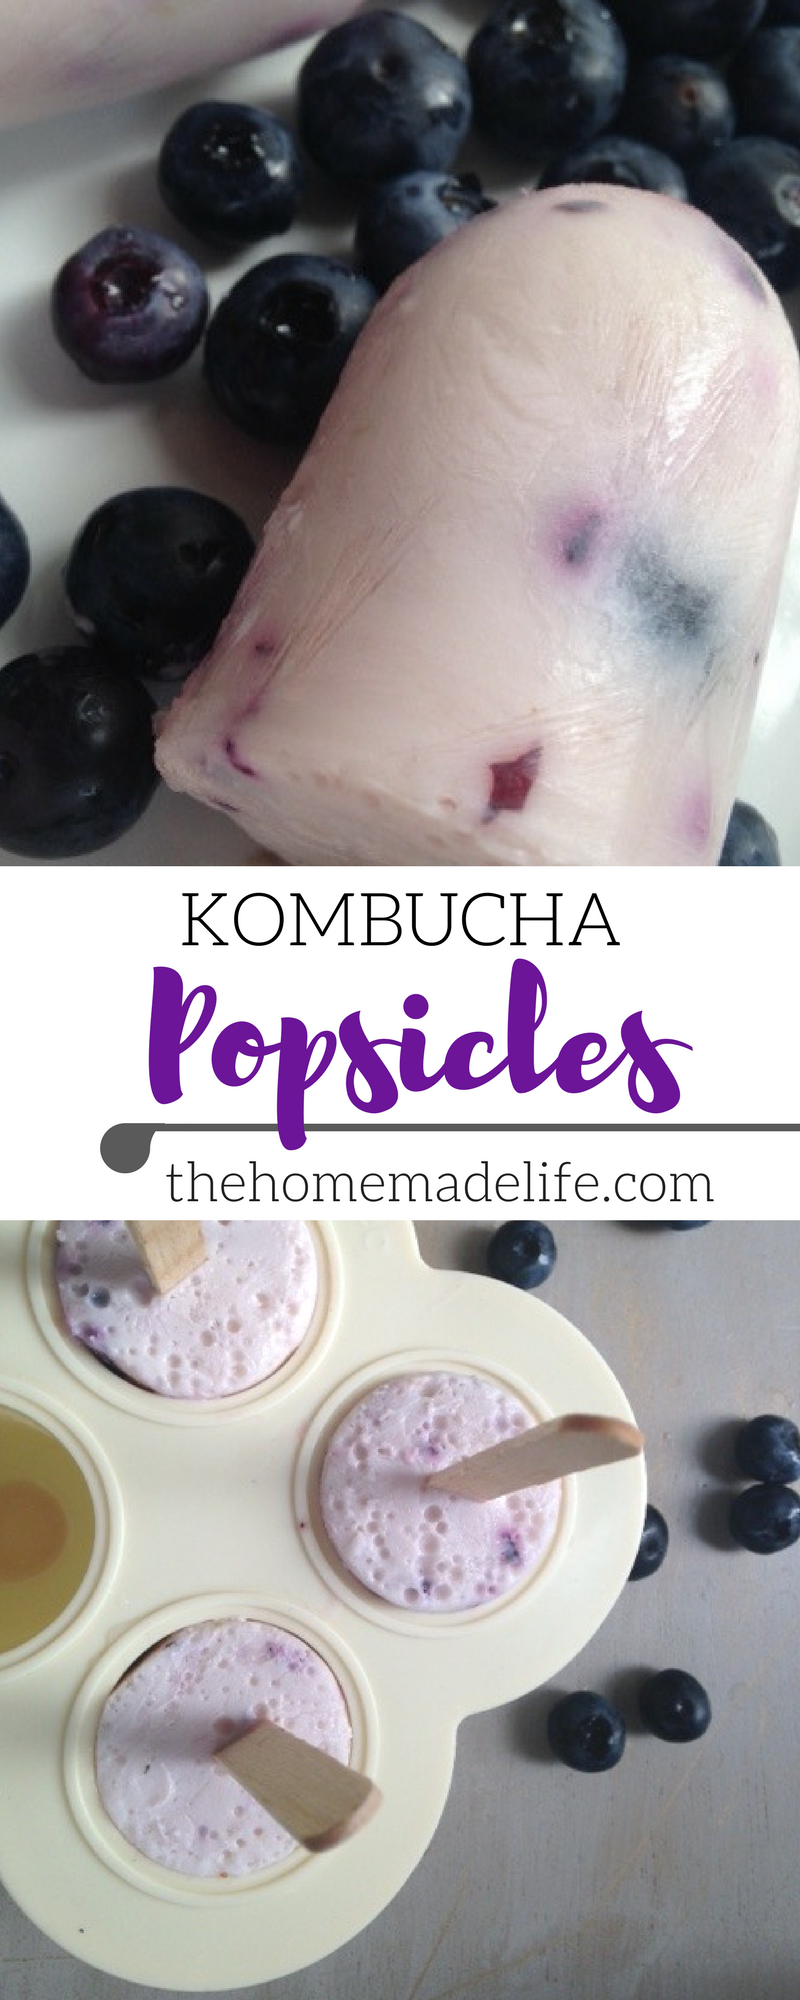 Blueberry Yogurt Kombucha Popsicles